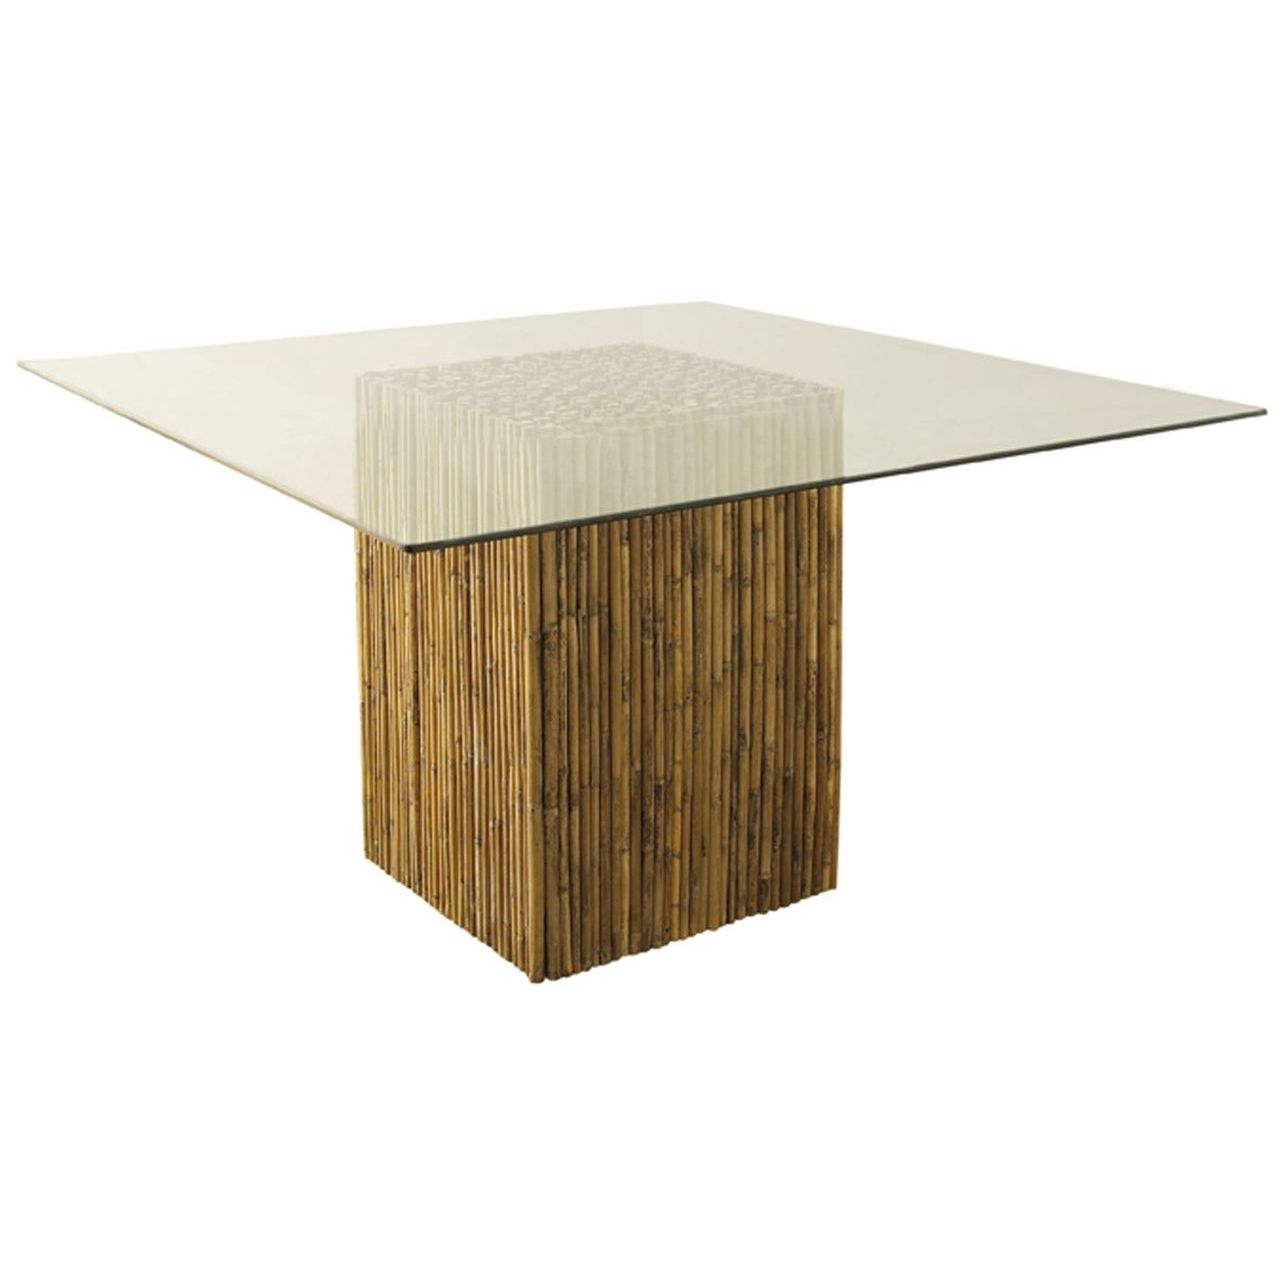 Padma Bamboo Stick Dining Table Base With Glass